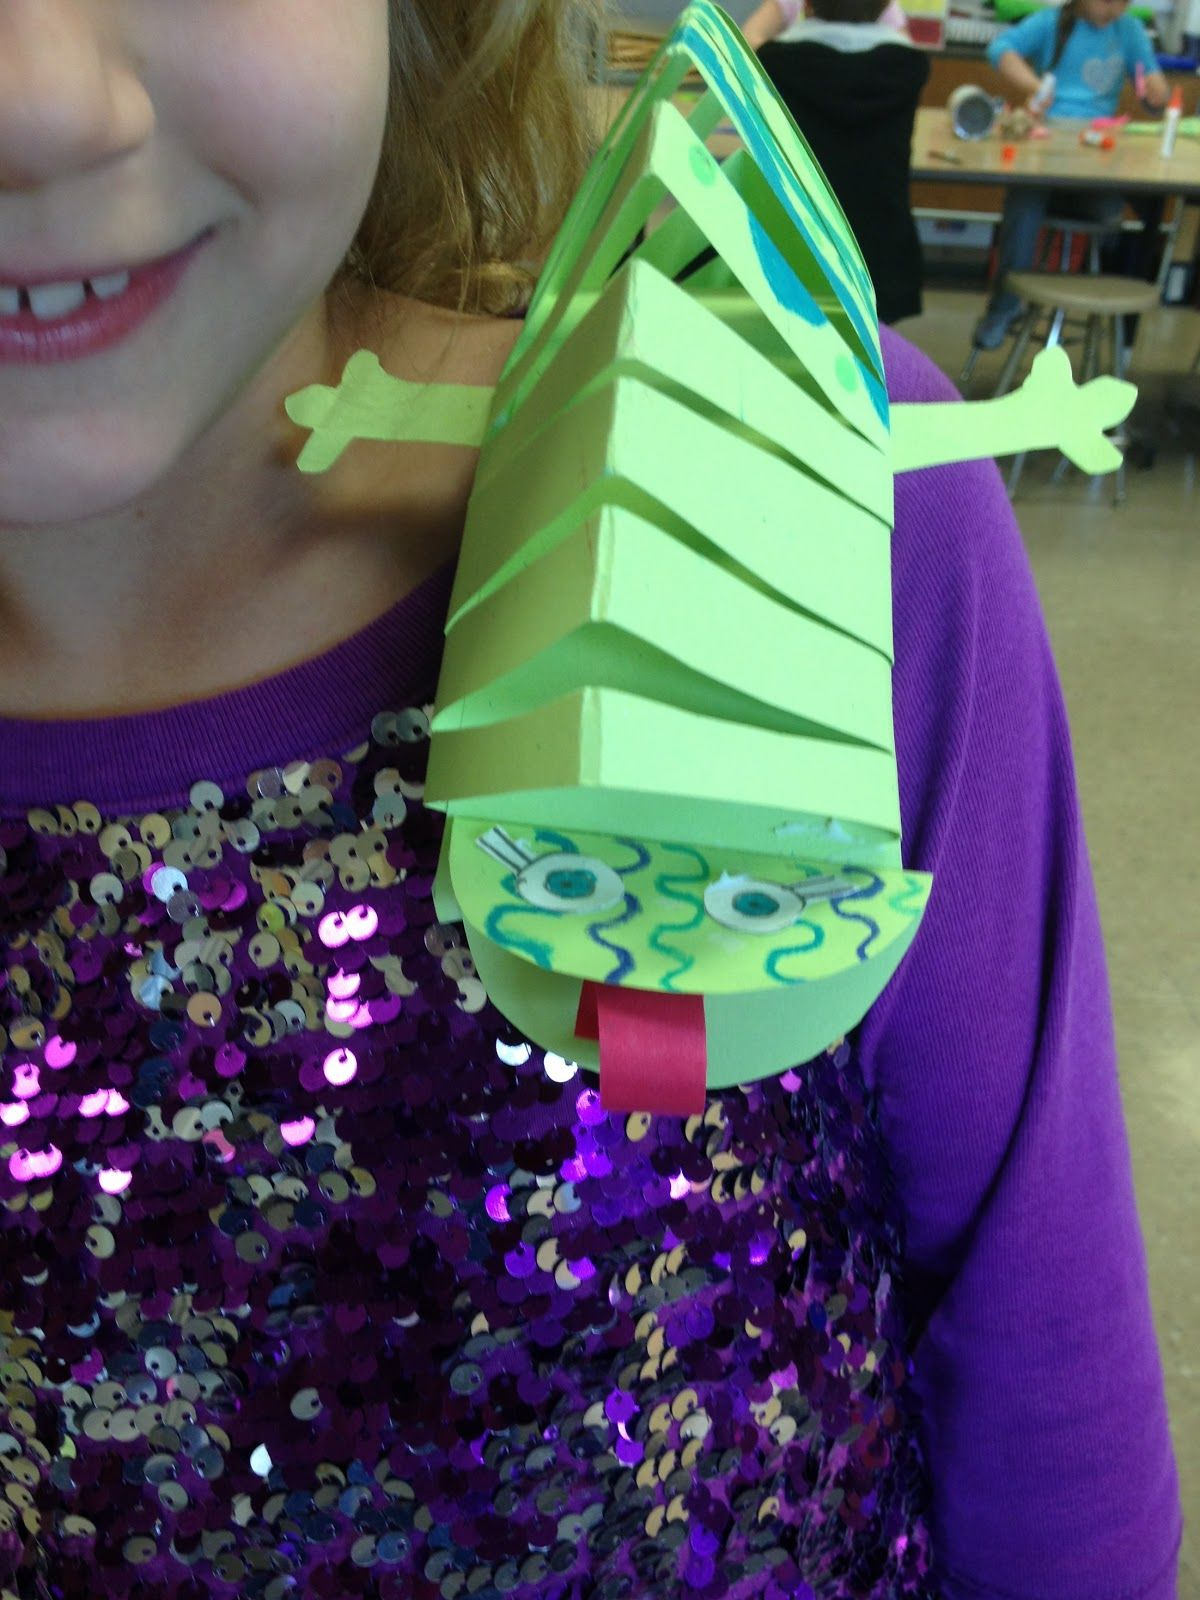 Artipelago Chameleon Sculptures Kids Crafts Diy And